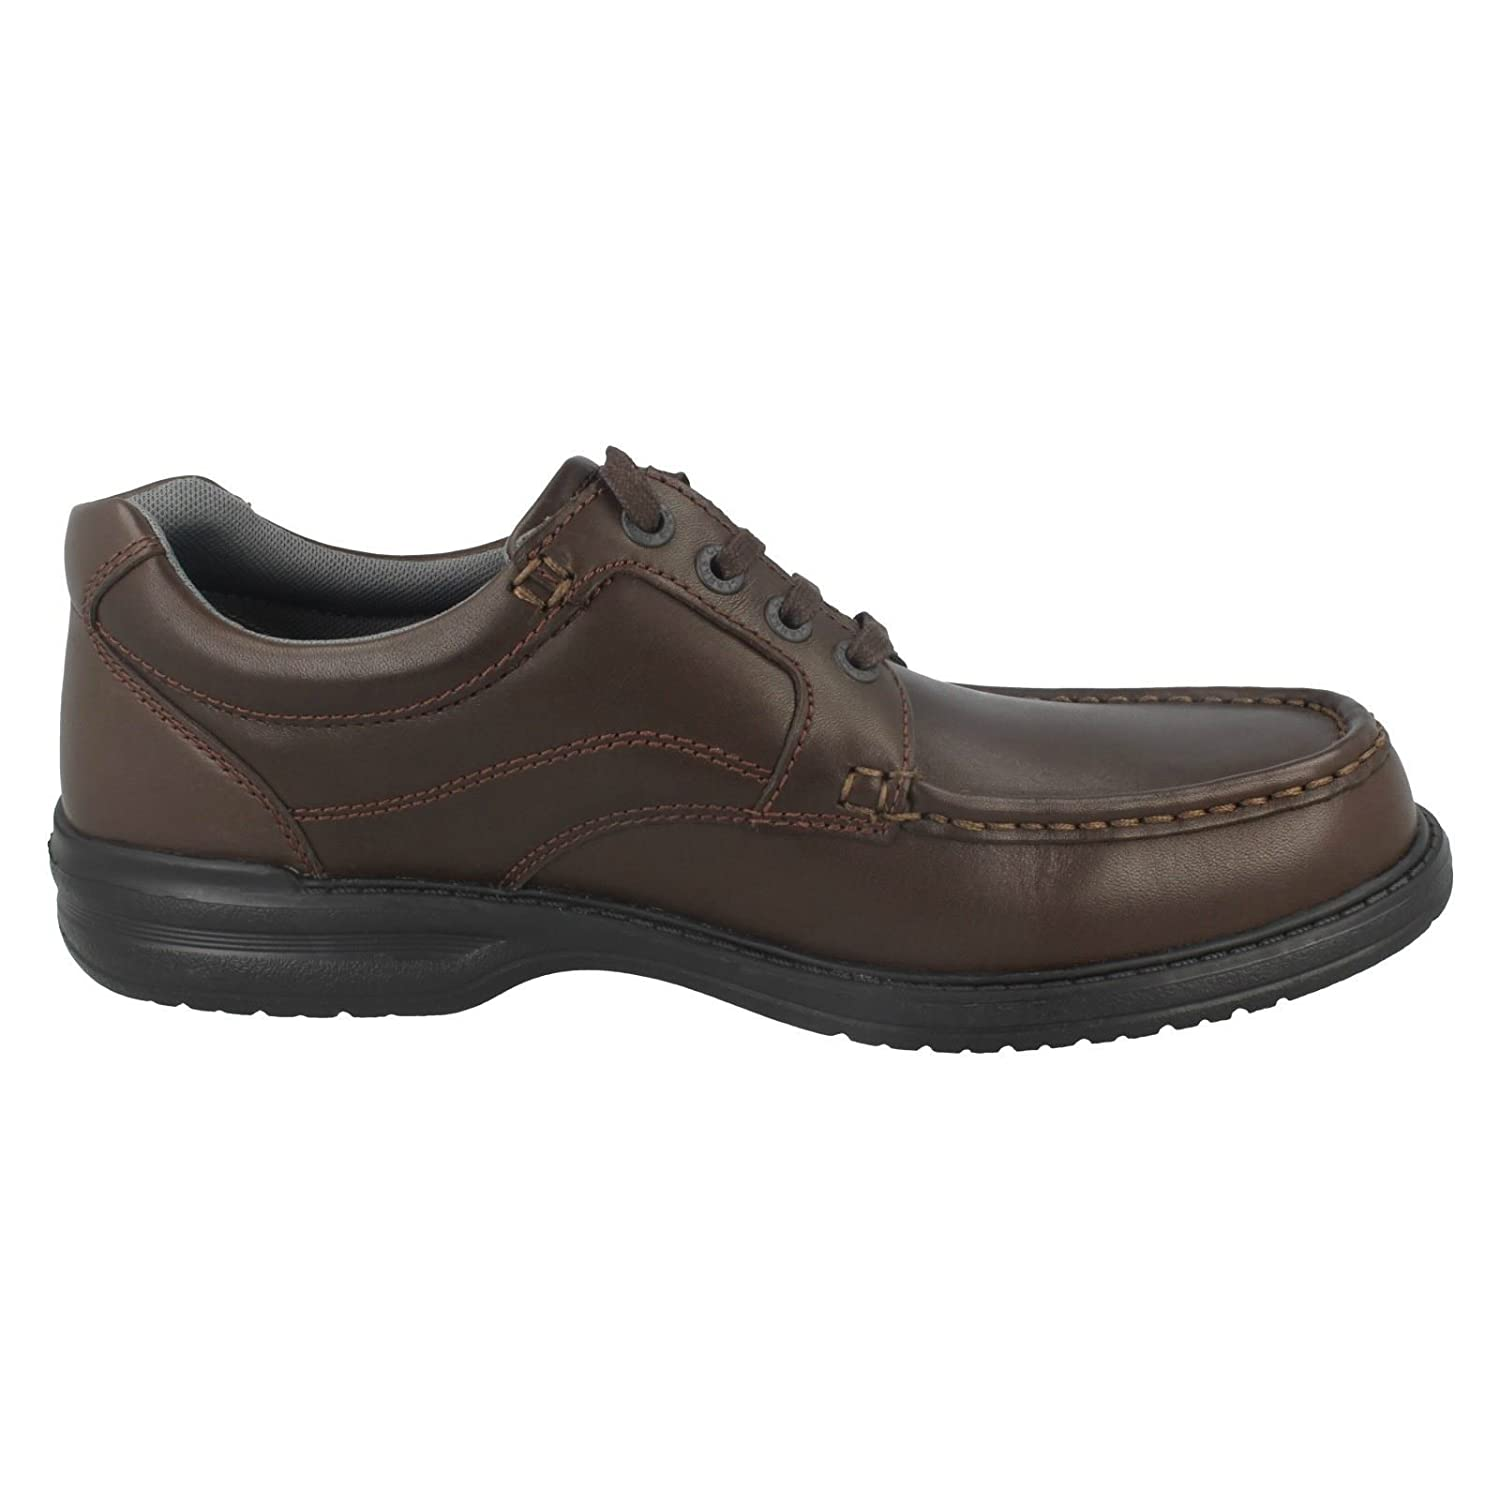 popular brand store competitive price Clarks Keeler Walk Mens Casual Shoes